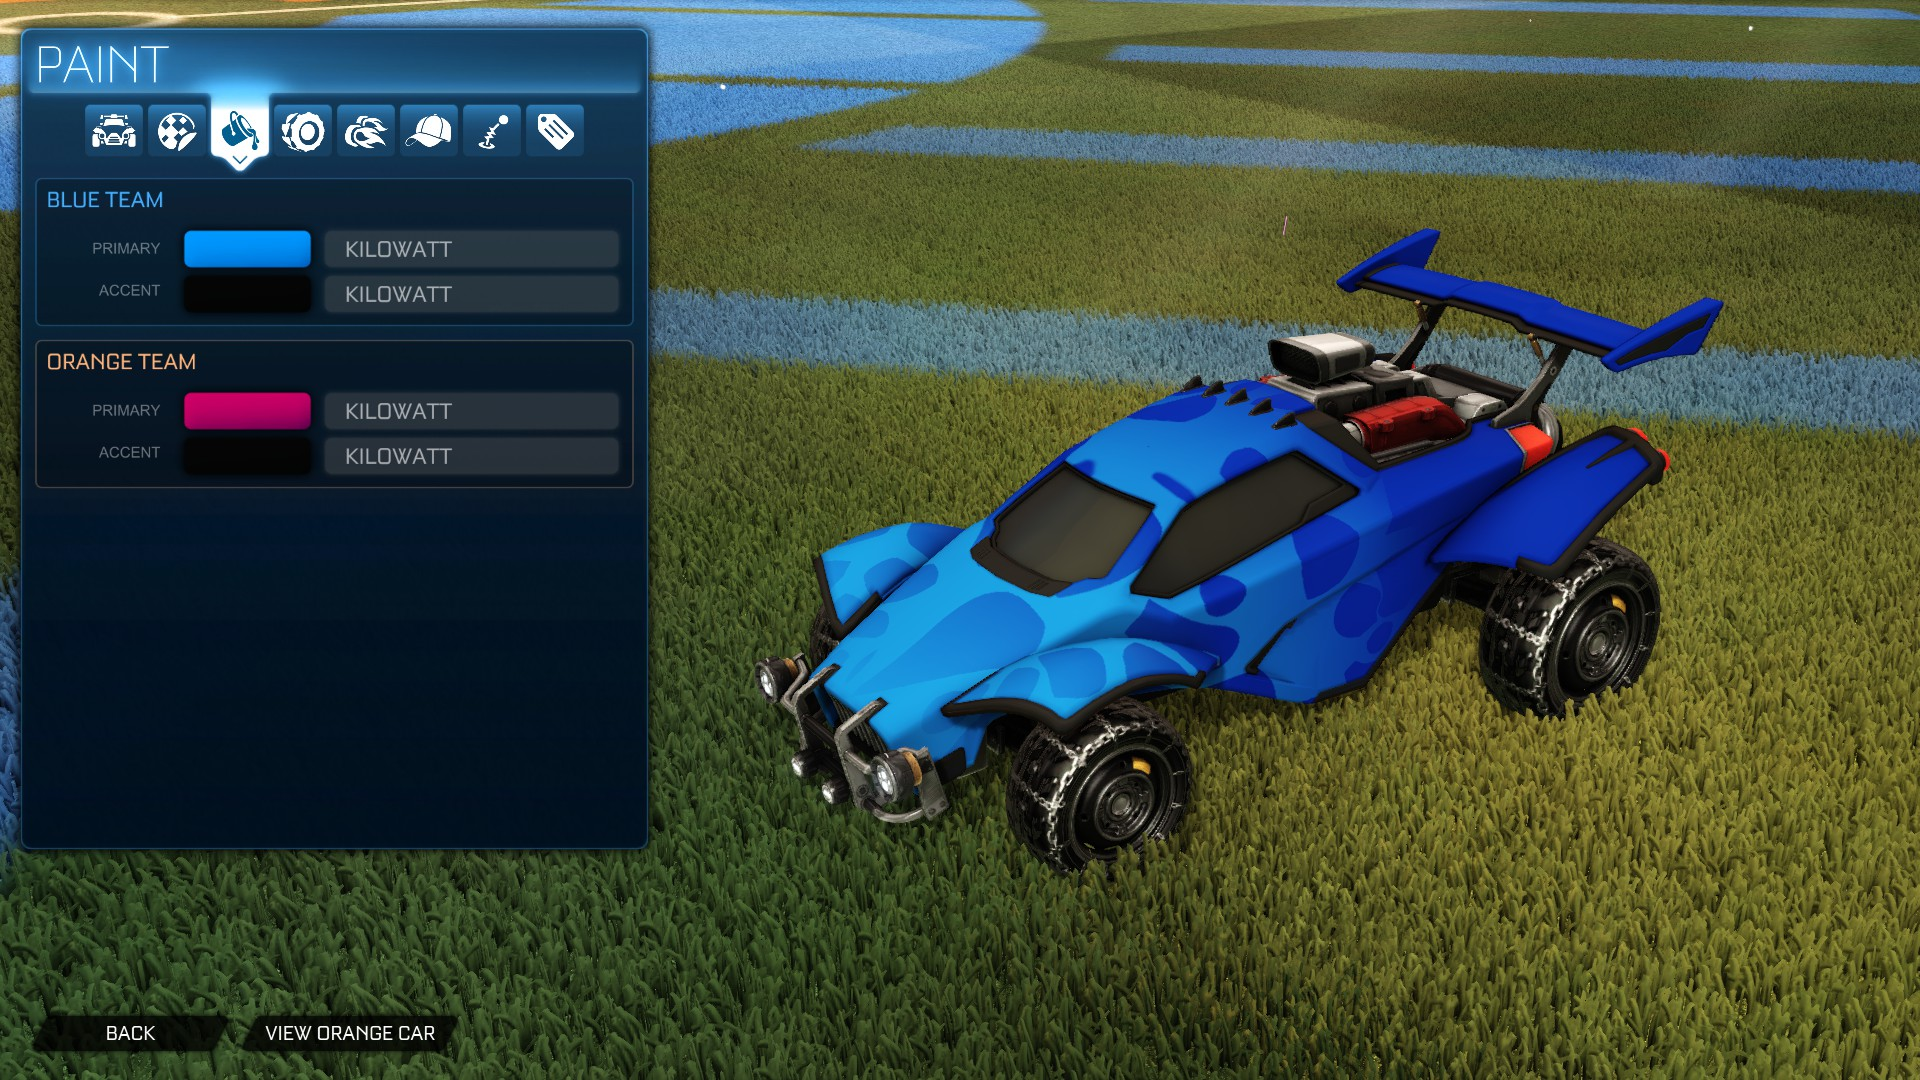 3 new animated decal for octane: stone,matrix,hexagons